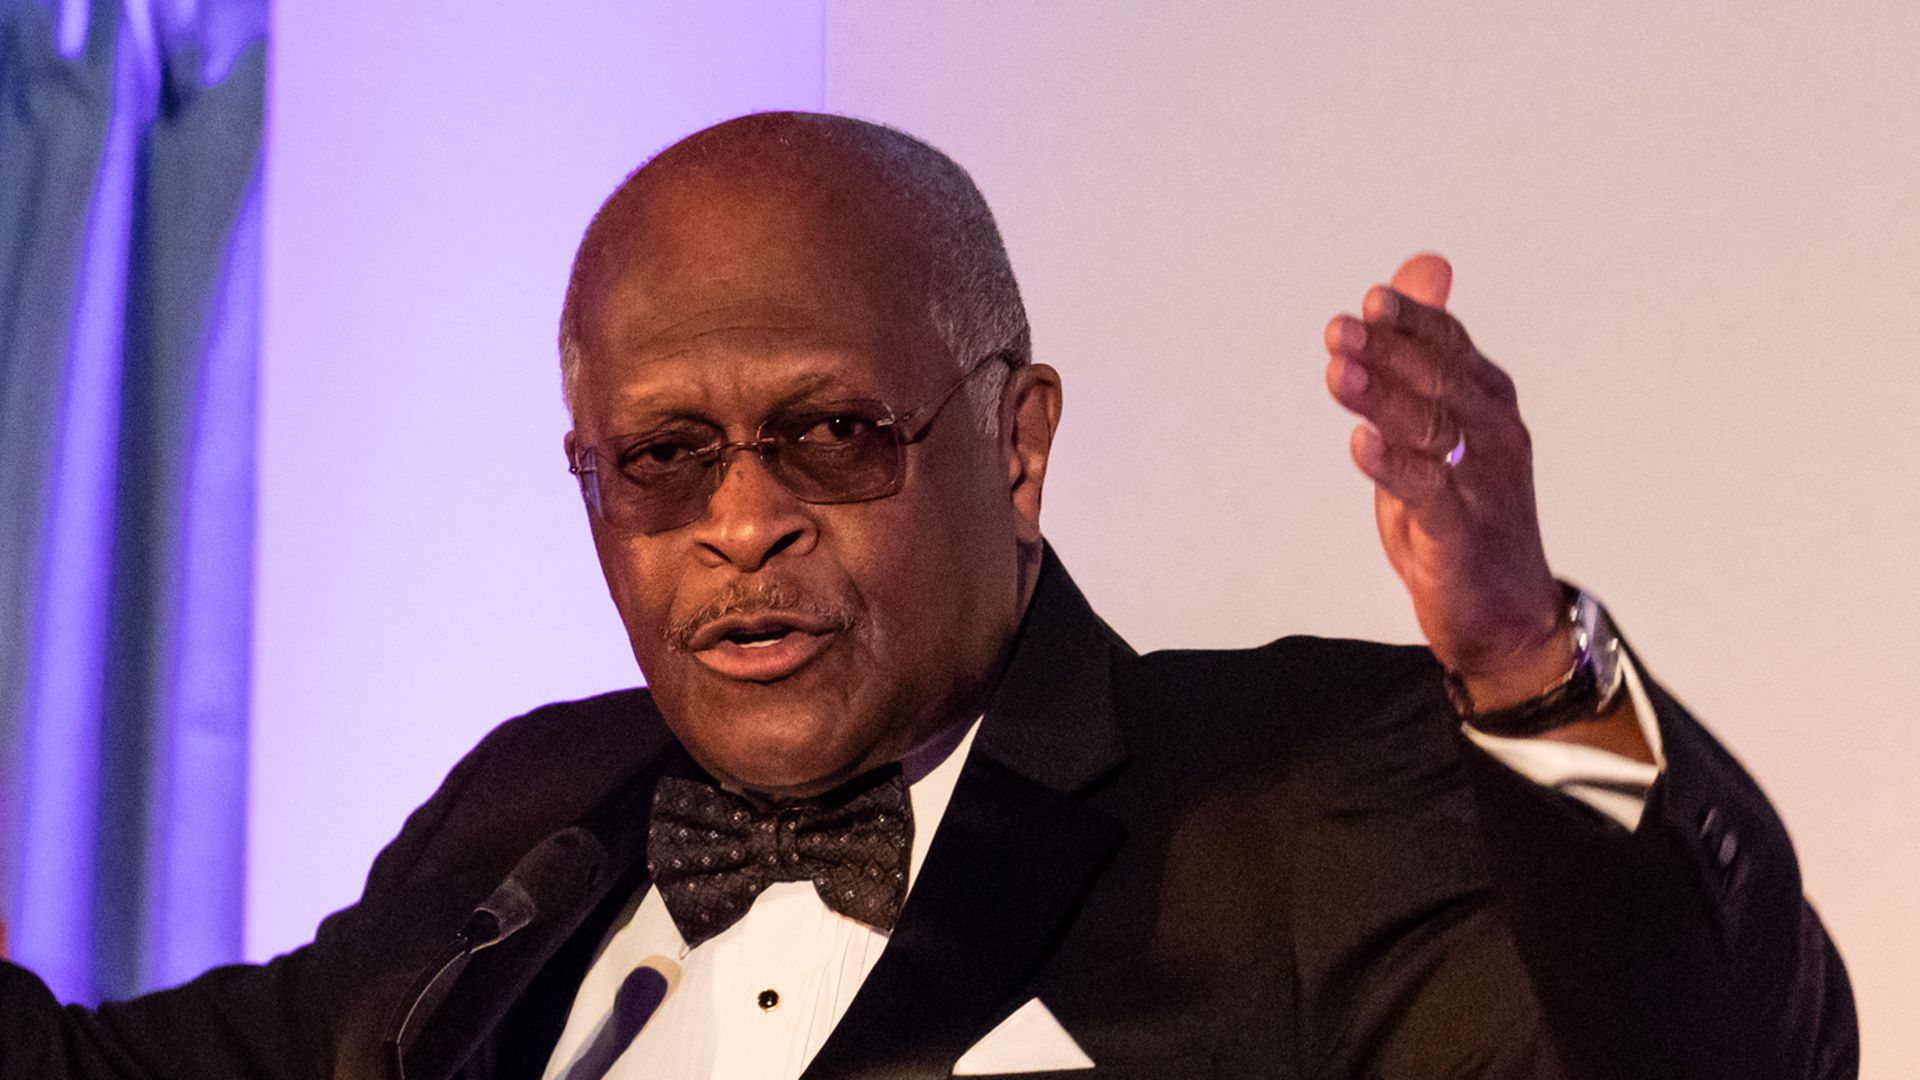 Herman Cain says the sexual misconduct accusations leveled against him did not impact his decision to turn down President Donald Trump's nomination.